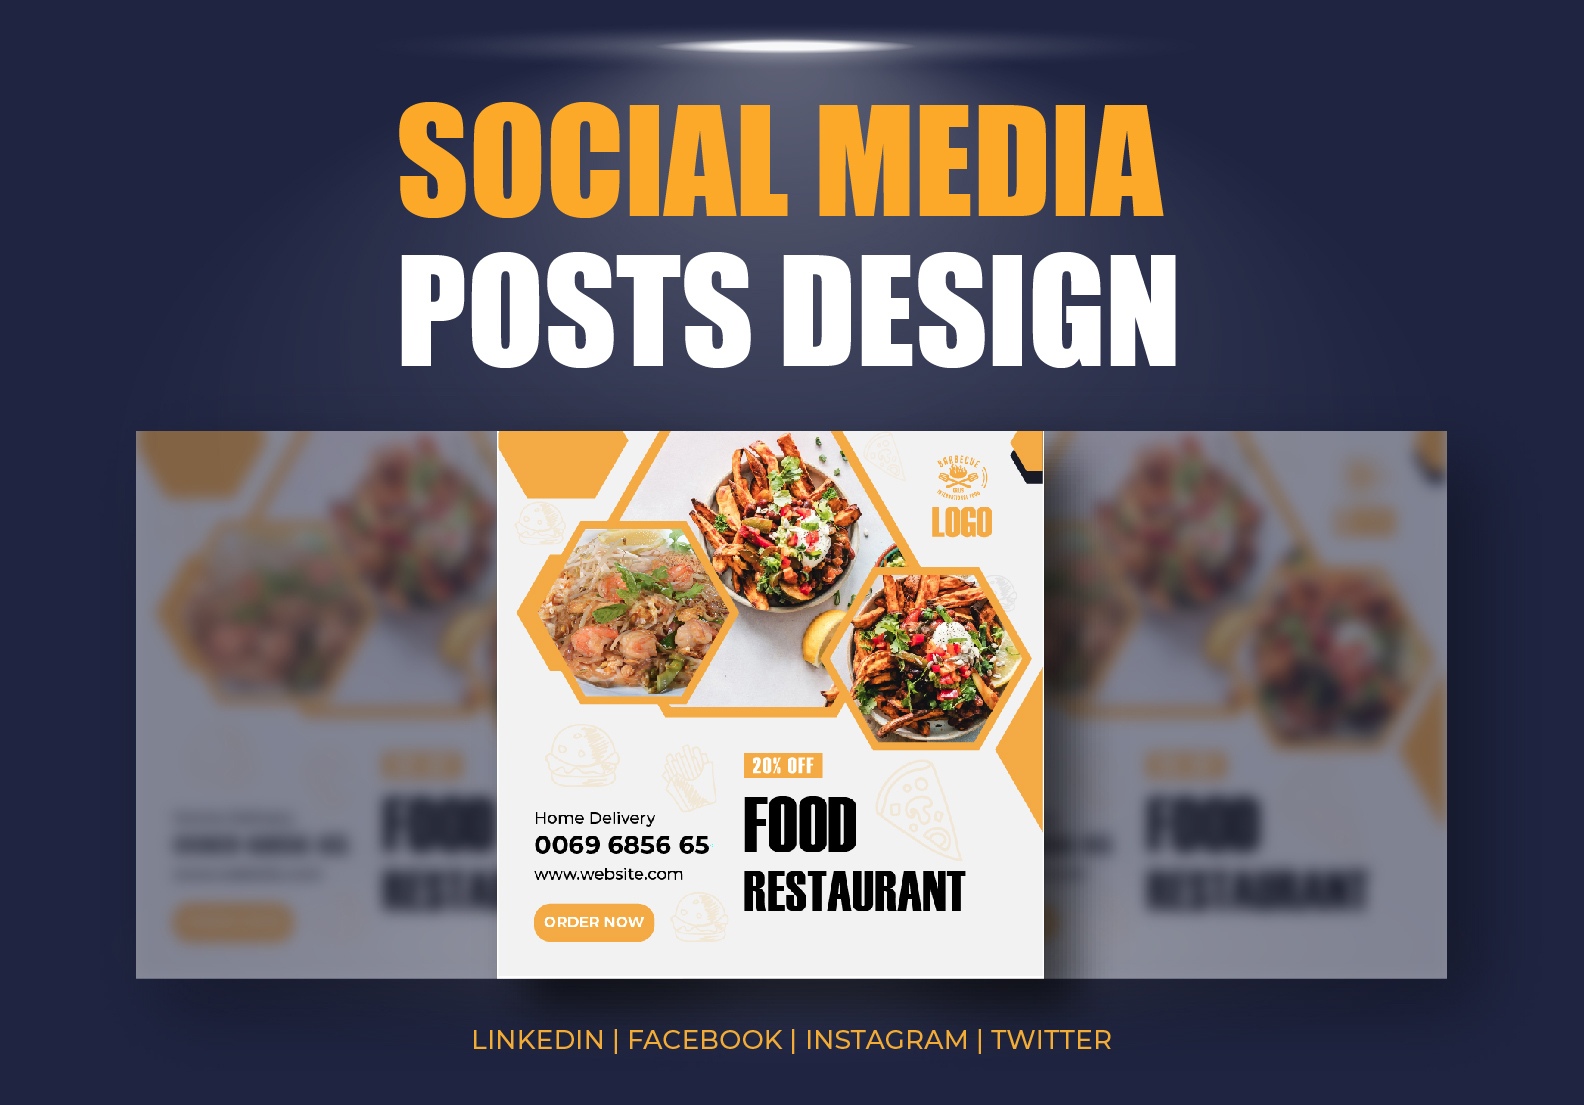 I will design creative professional social media posts